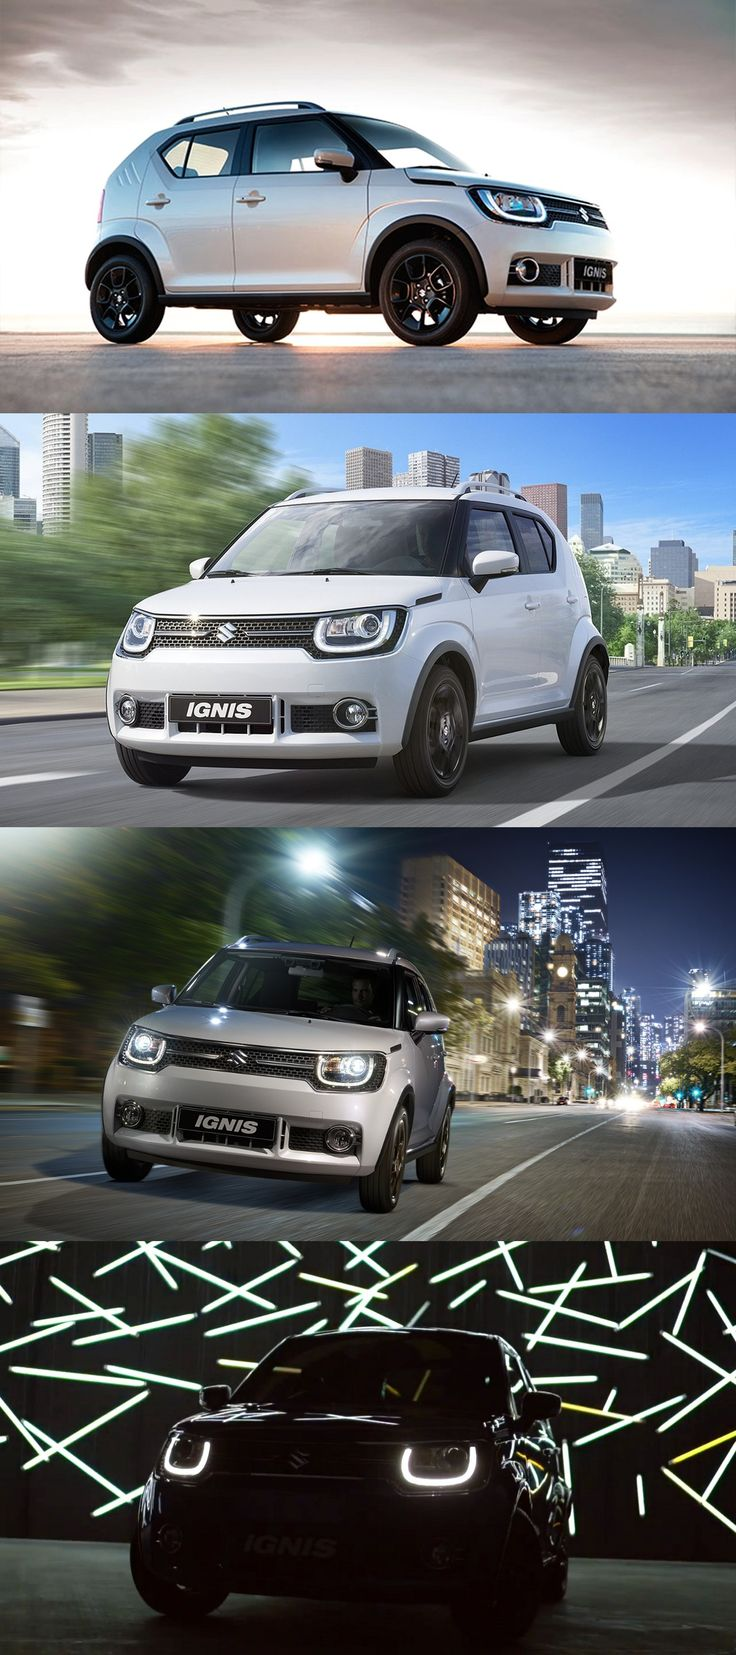 The variant list of the country s first premium urban compact vehicle maruti ignis have made its way online ahead of its official launch on january